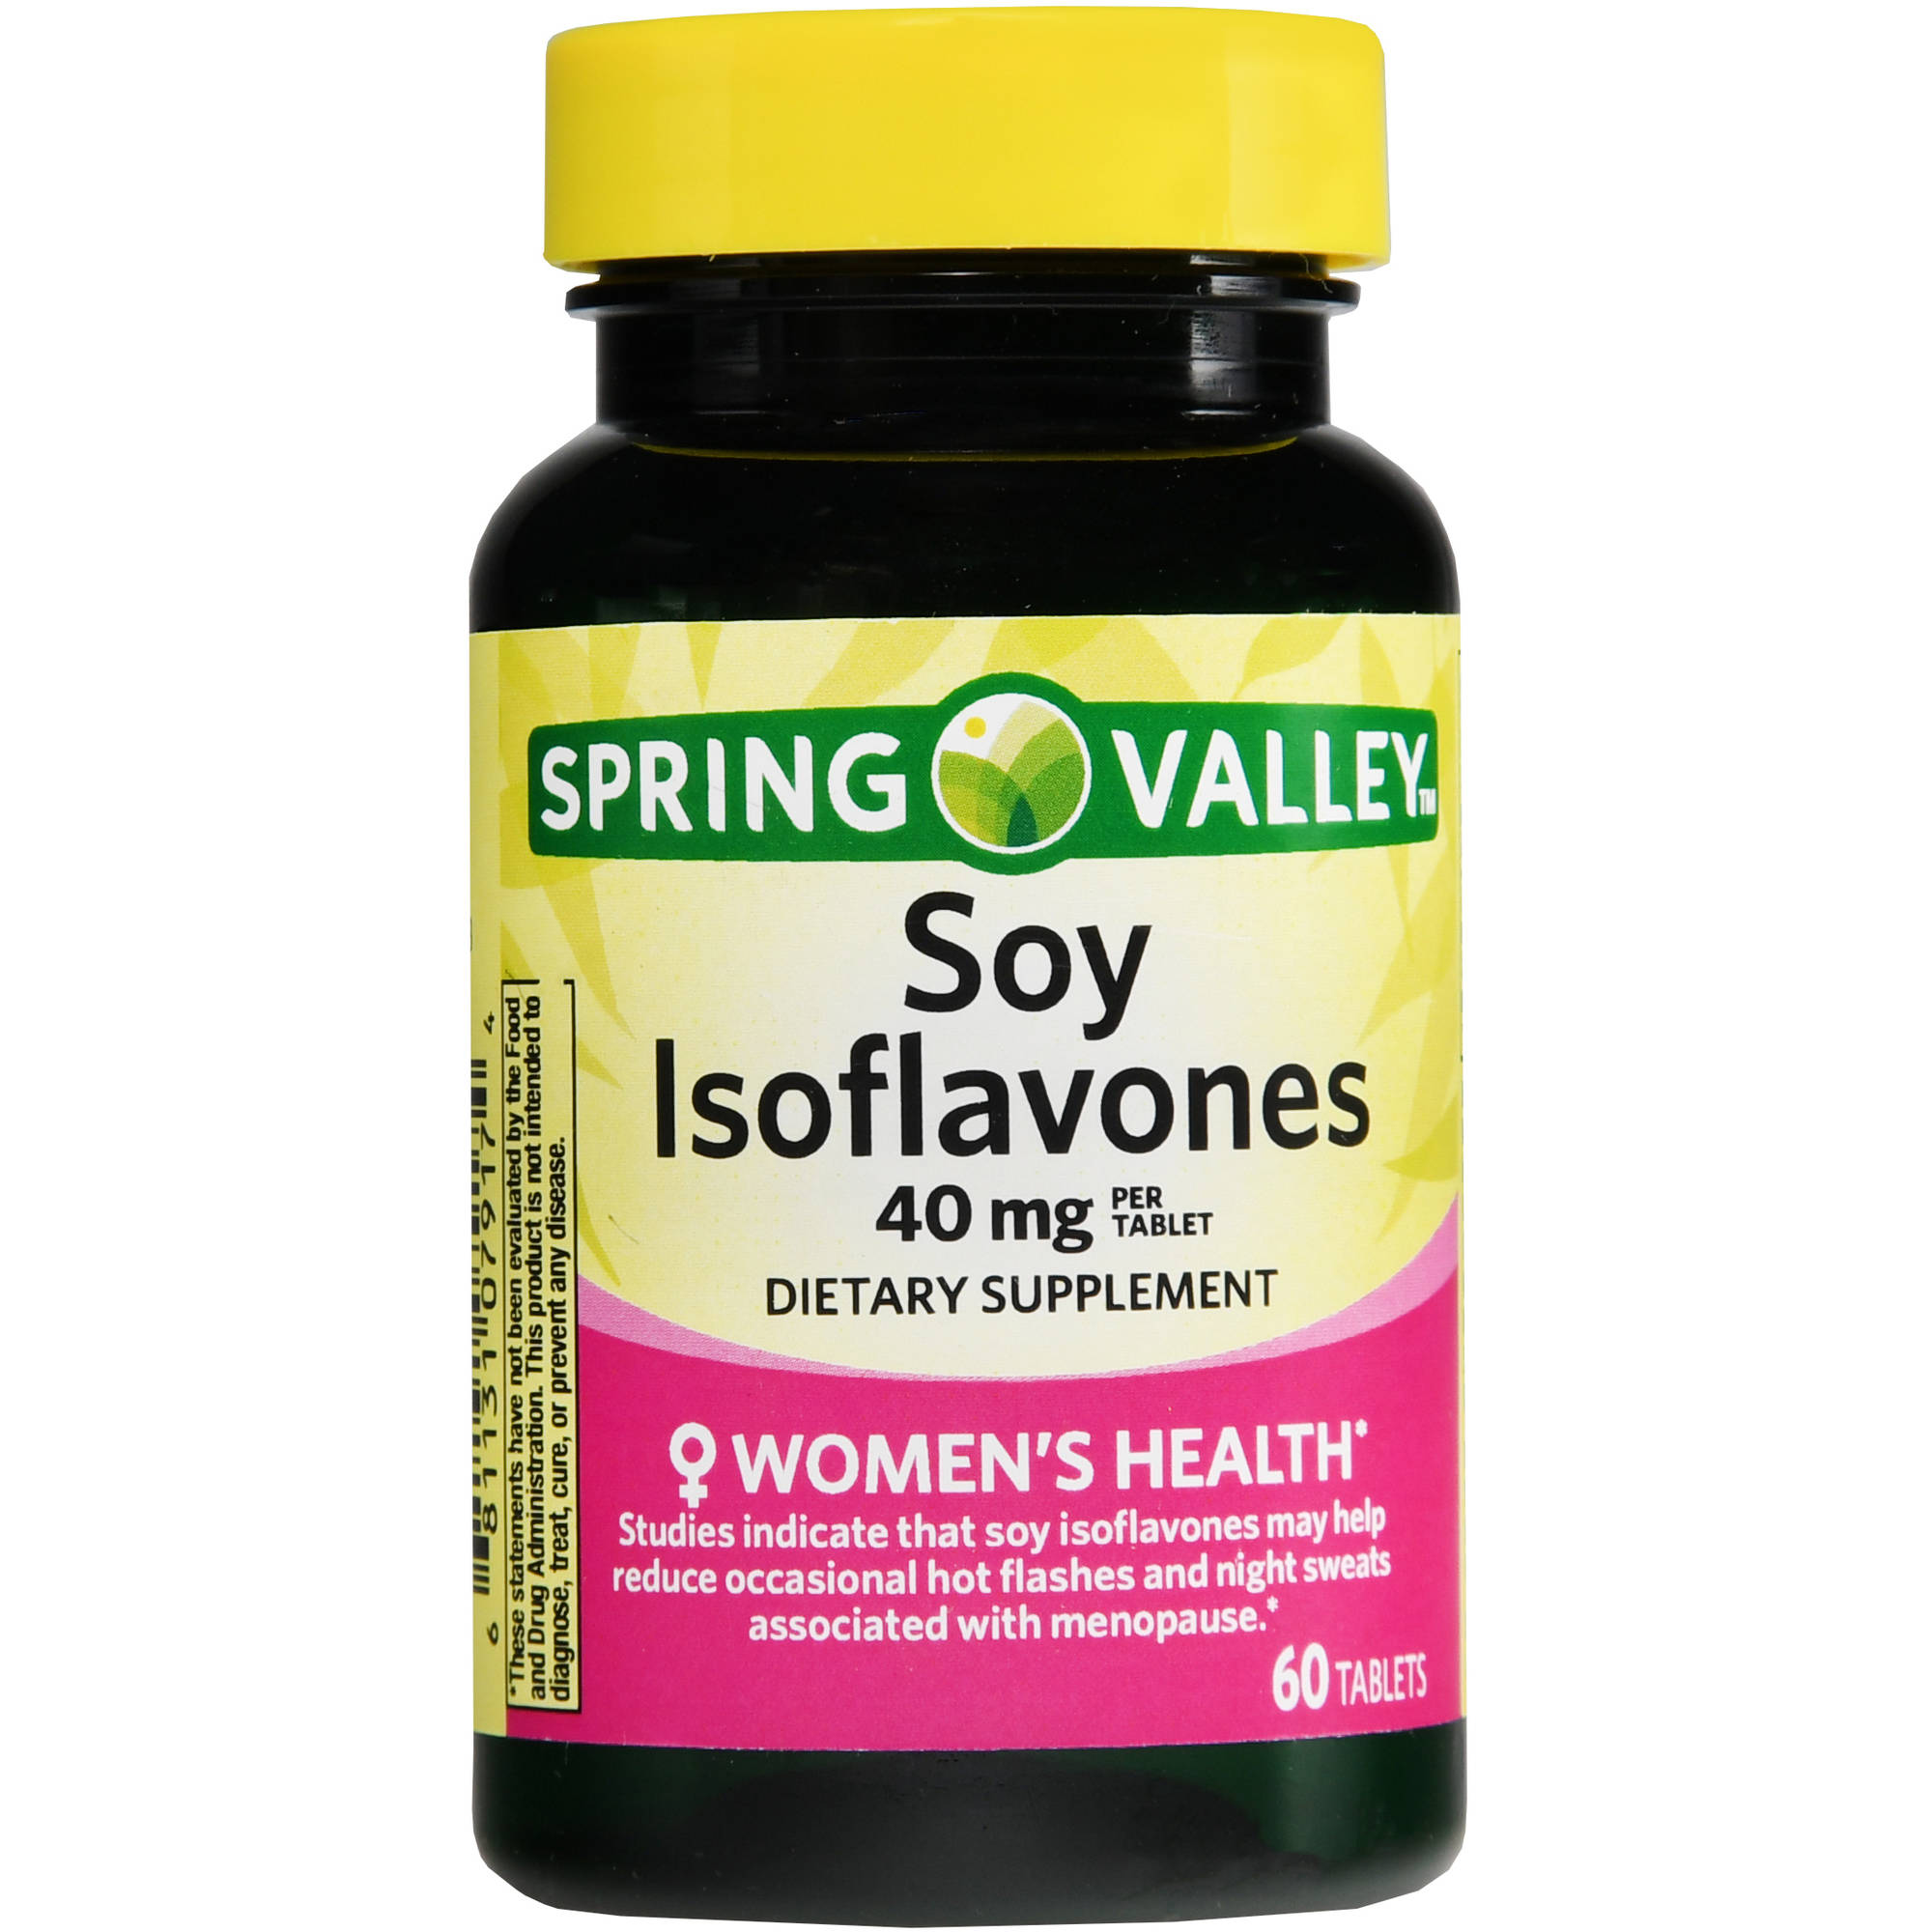 Soy tablets